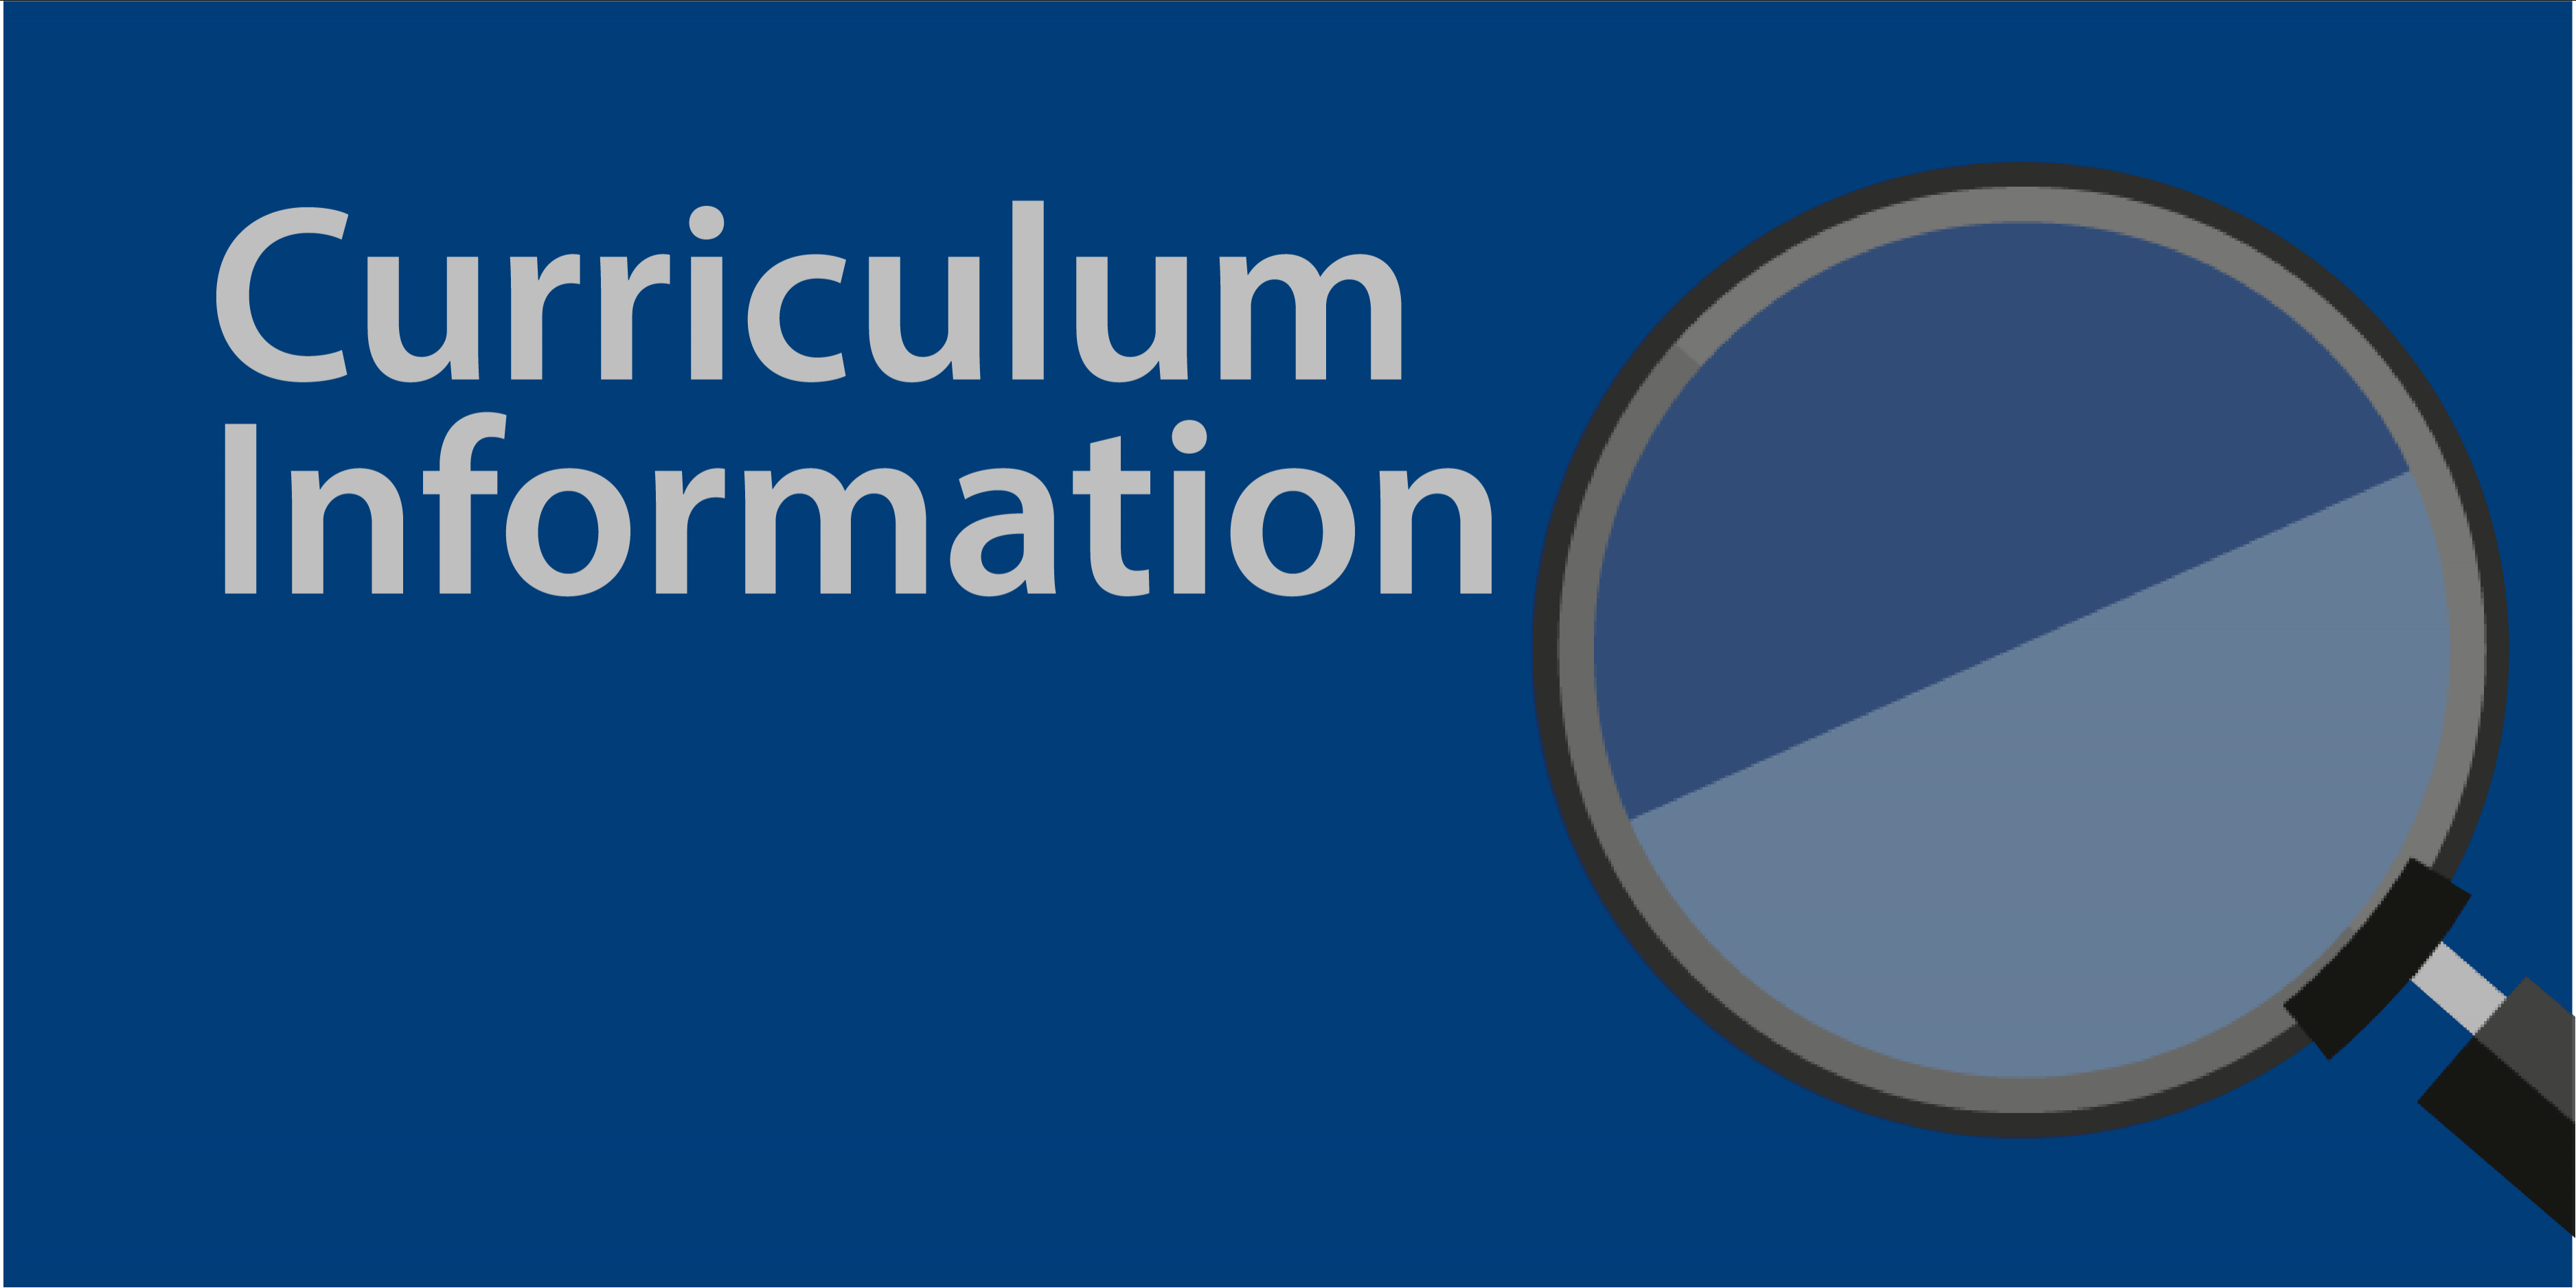 Curriculum Information